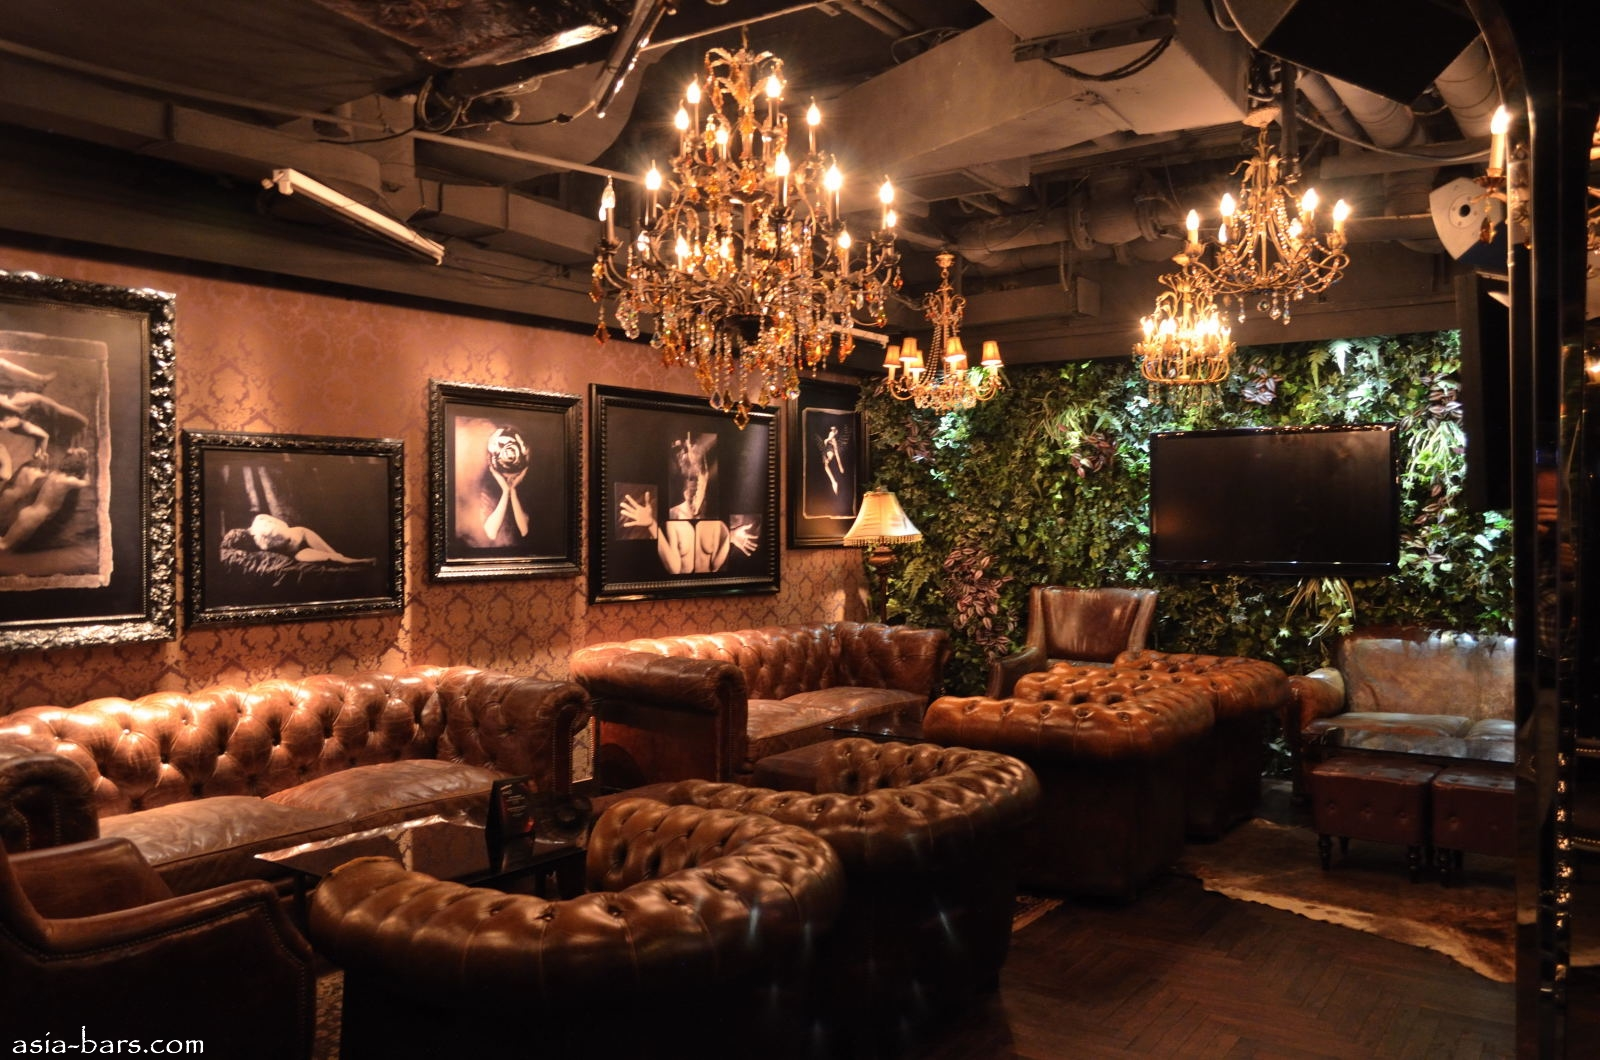 Halo Hong Kong Exclusive Members Only Lounge Consumate